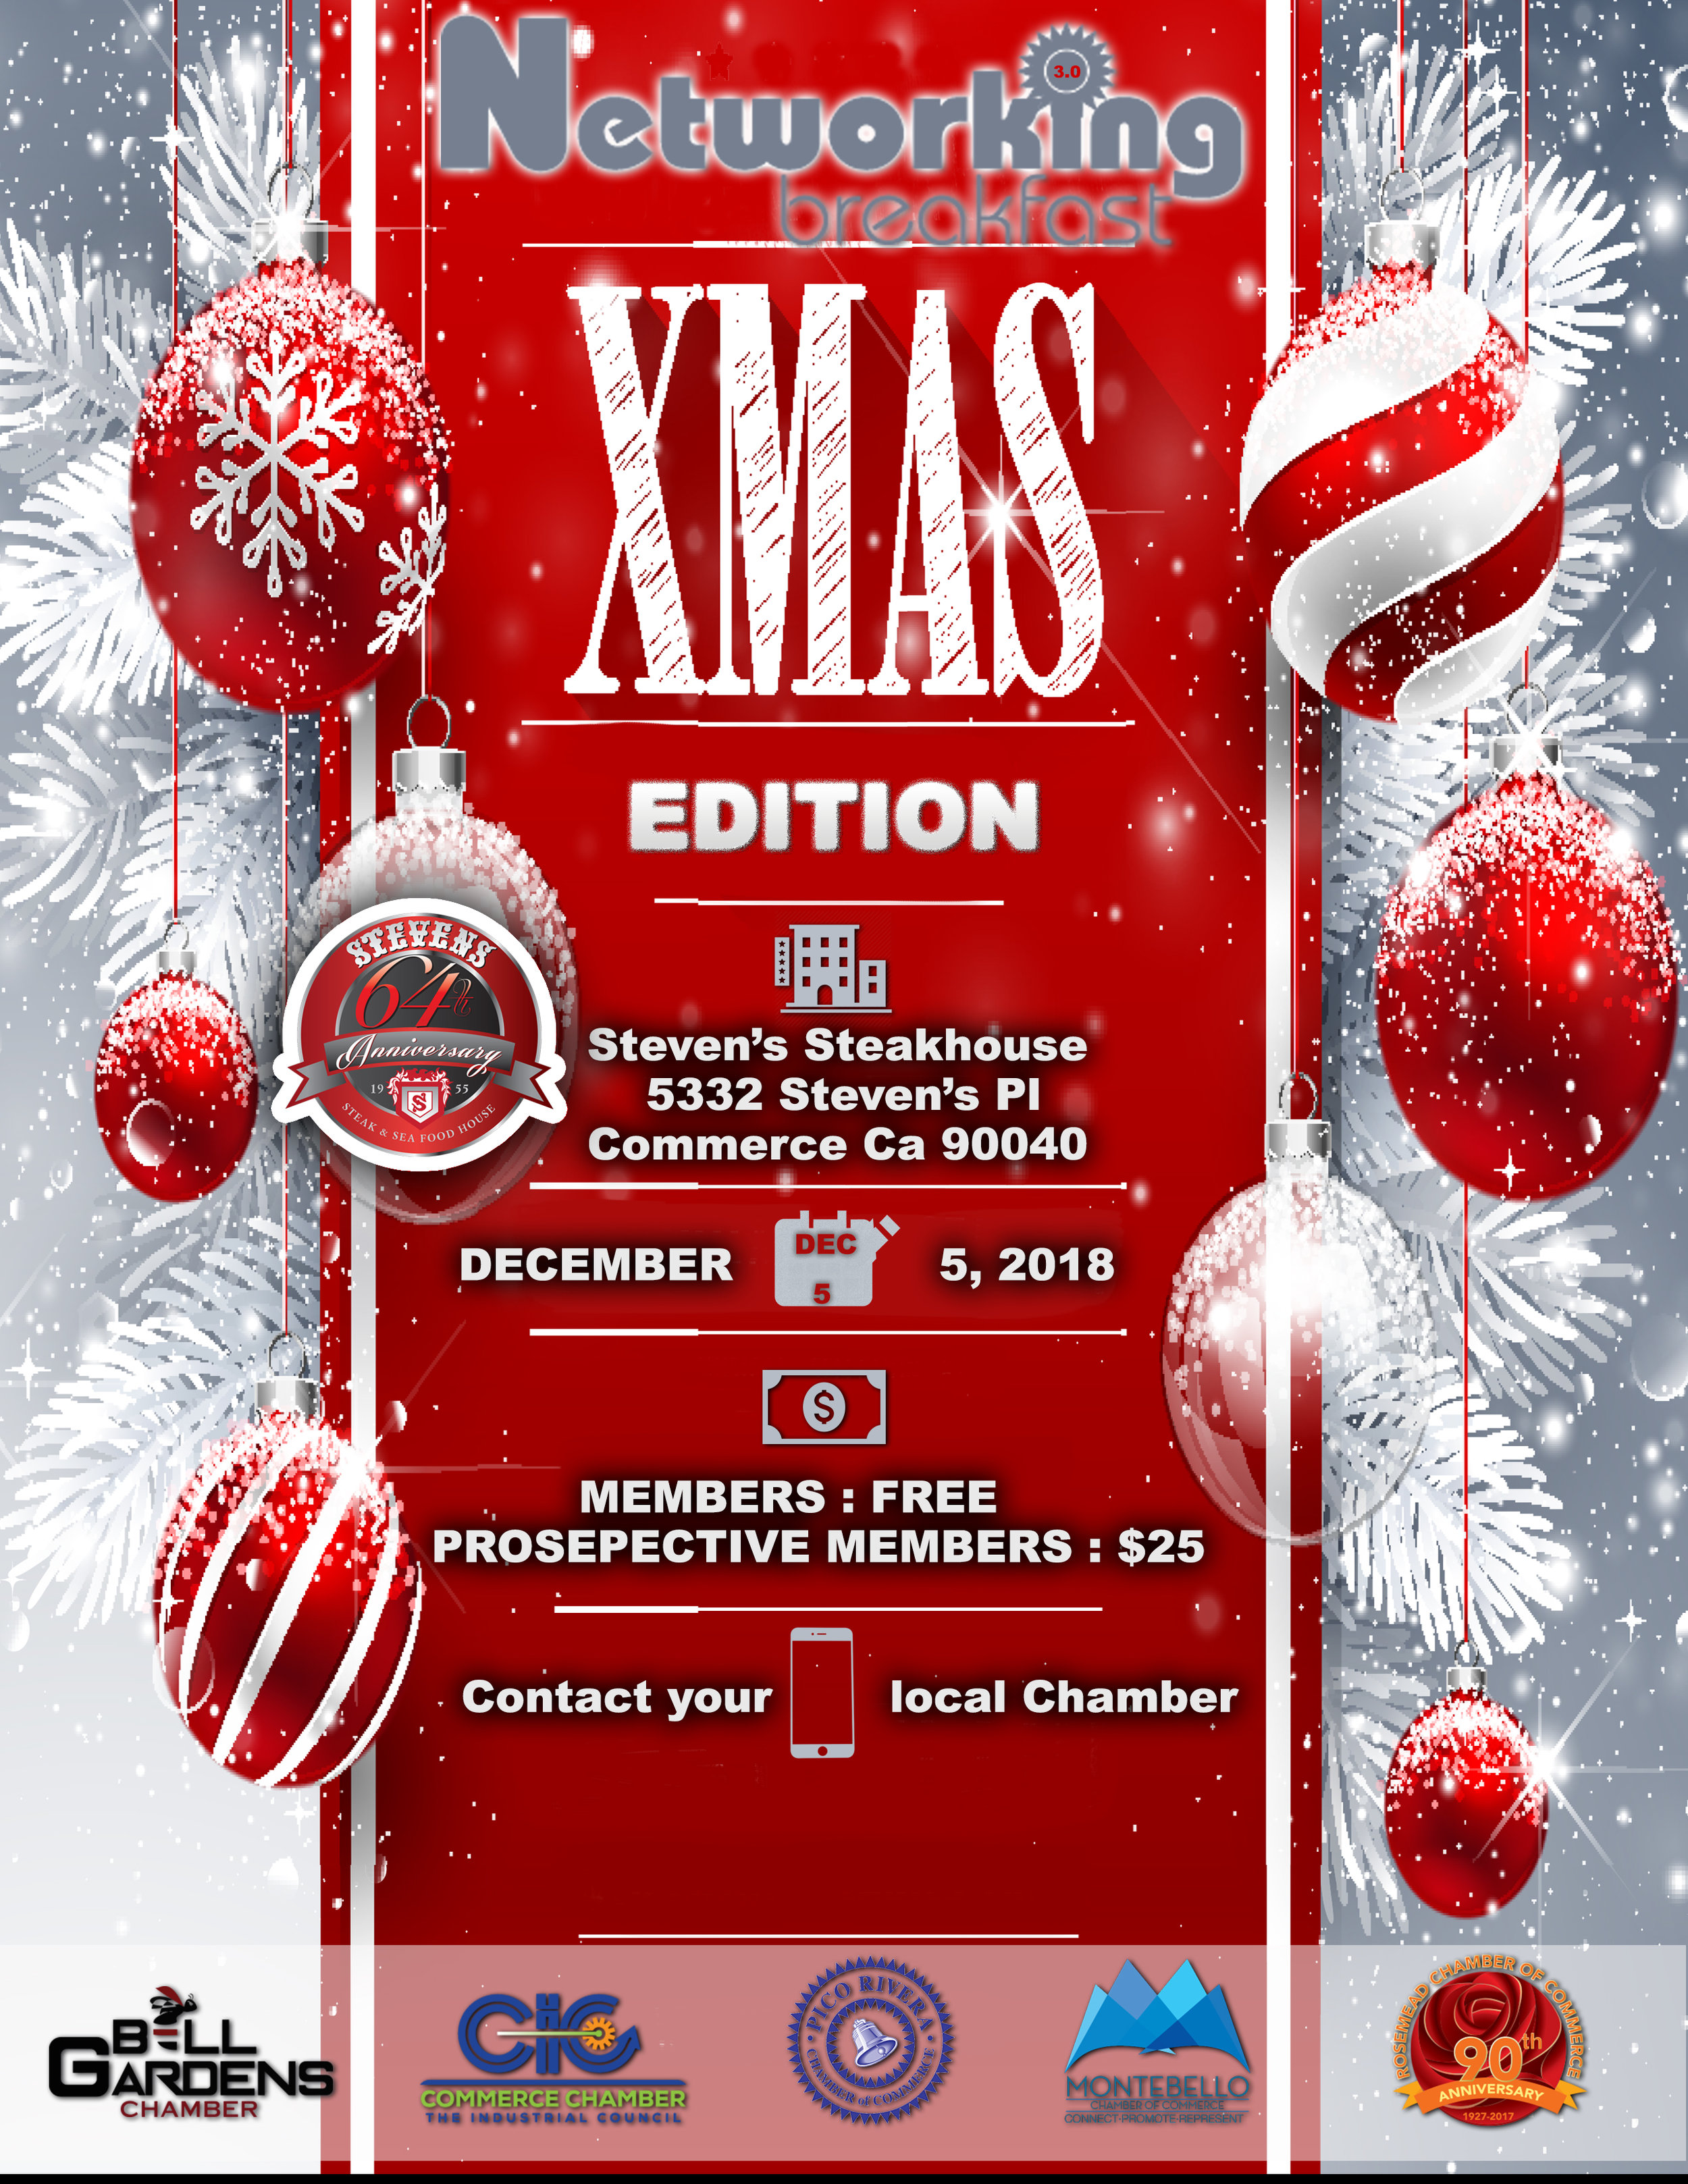 Networking 3.0 xmas edition - December 5th, 2018